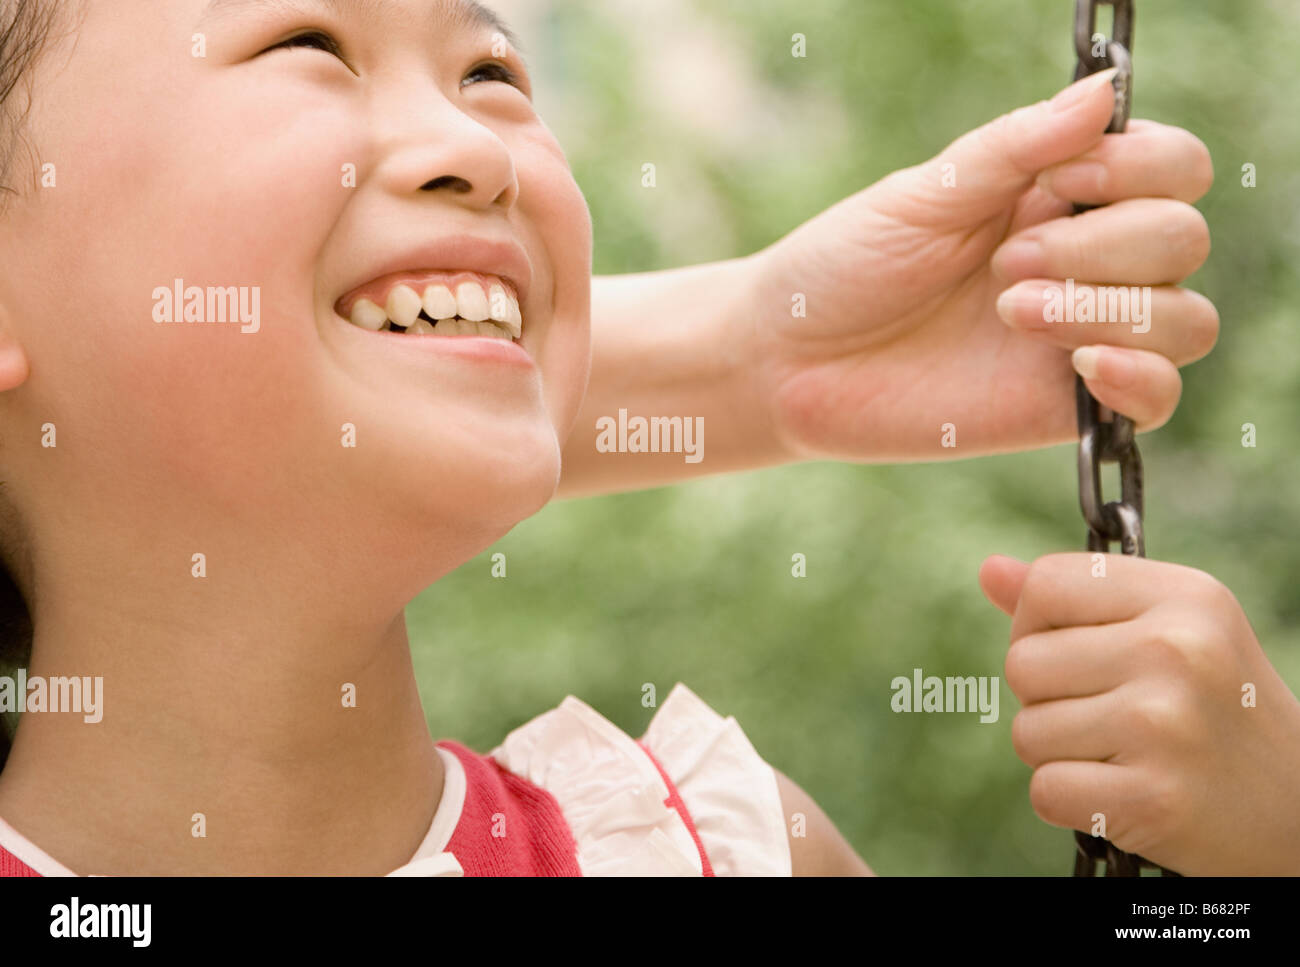 Close-up of a girl smiling on a swing - Stock Image